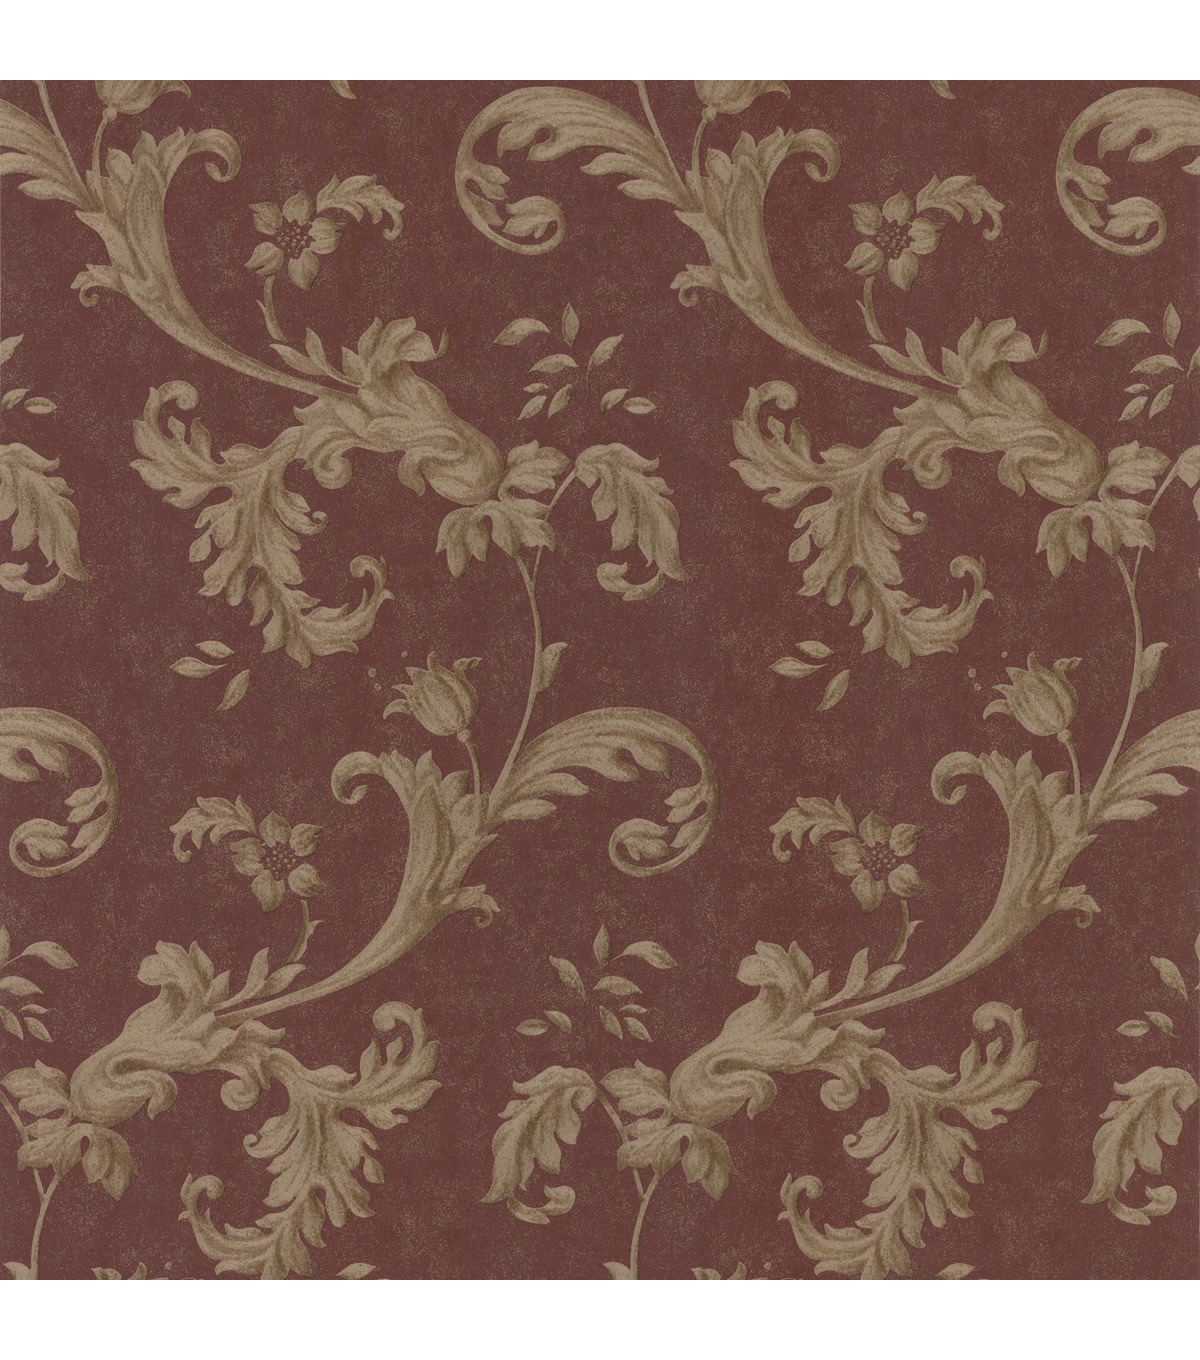 Isleworth Burgundy Floral Scroll Wallpaper Jo Ann 1200x1360